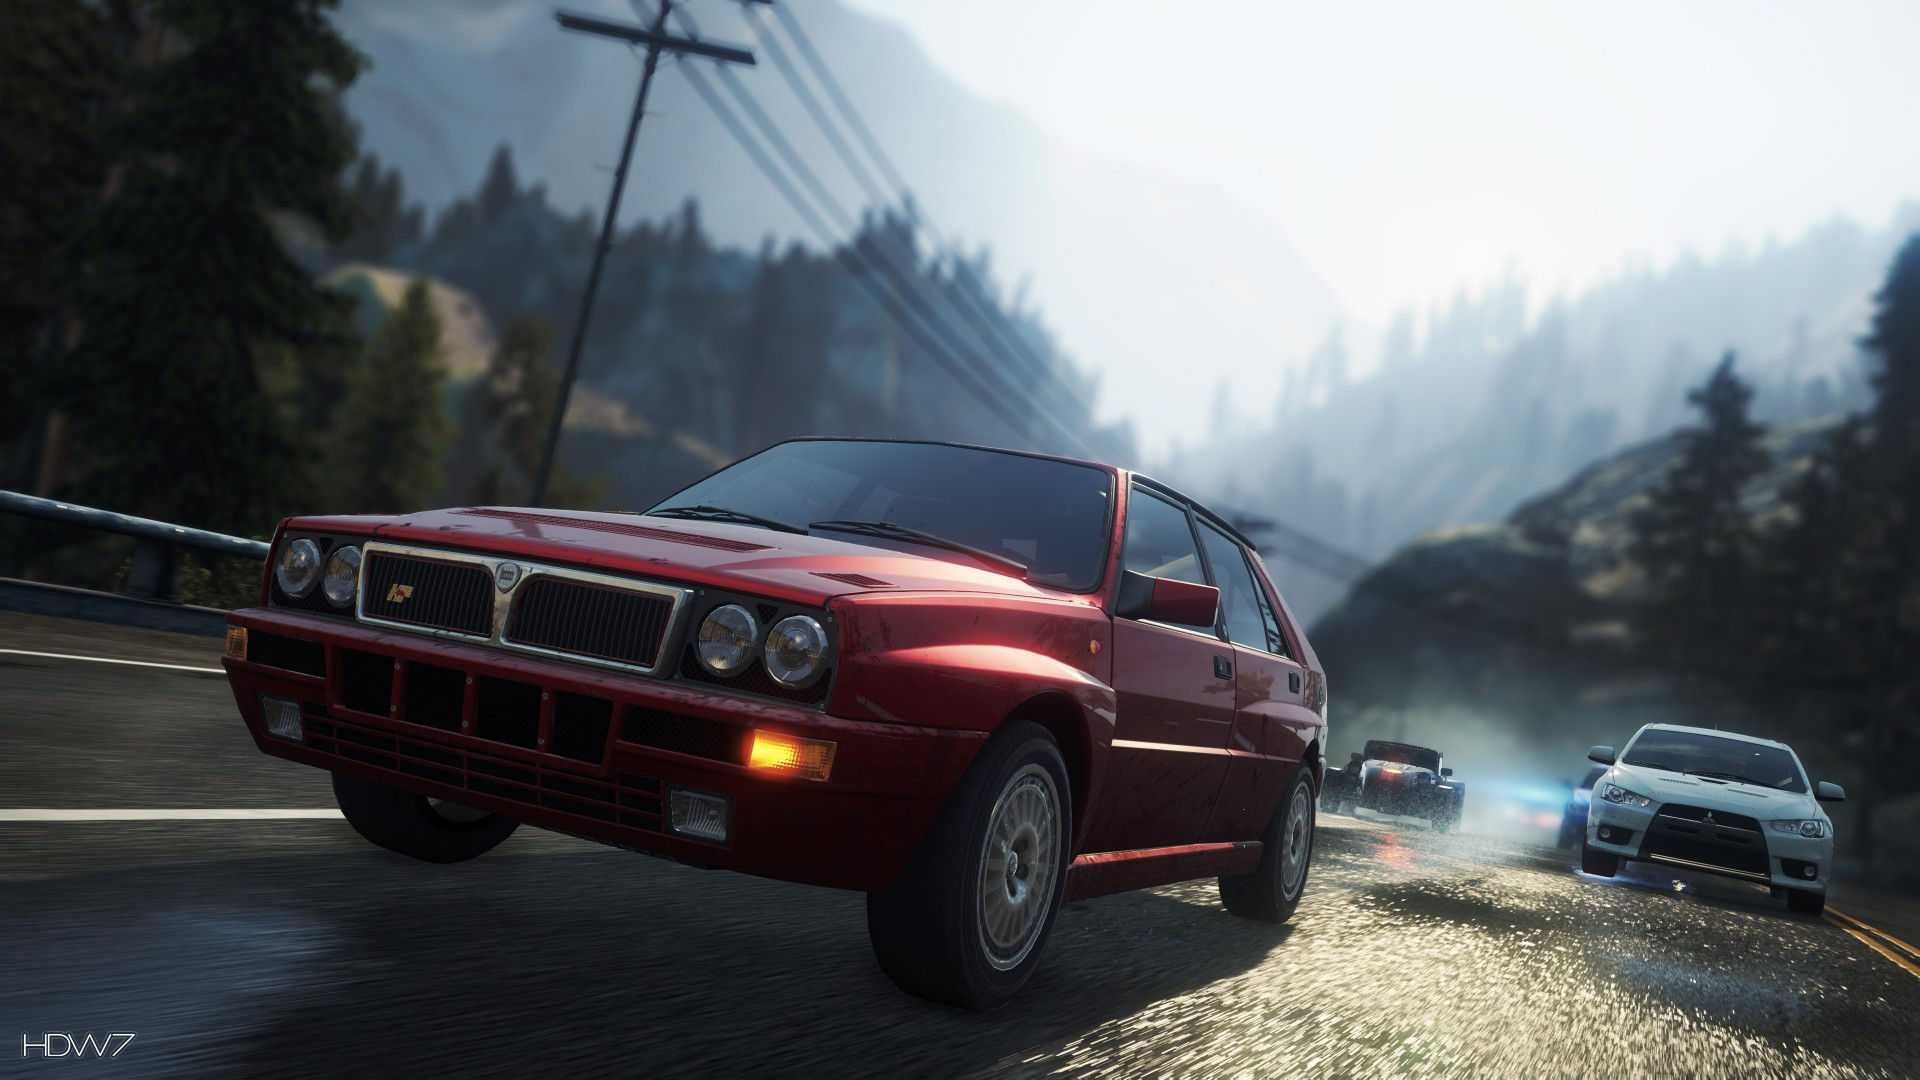 Need For Speed Most Wanted 2012 Lancia Delta Hf Integrale